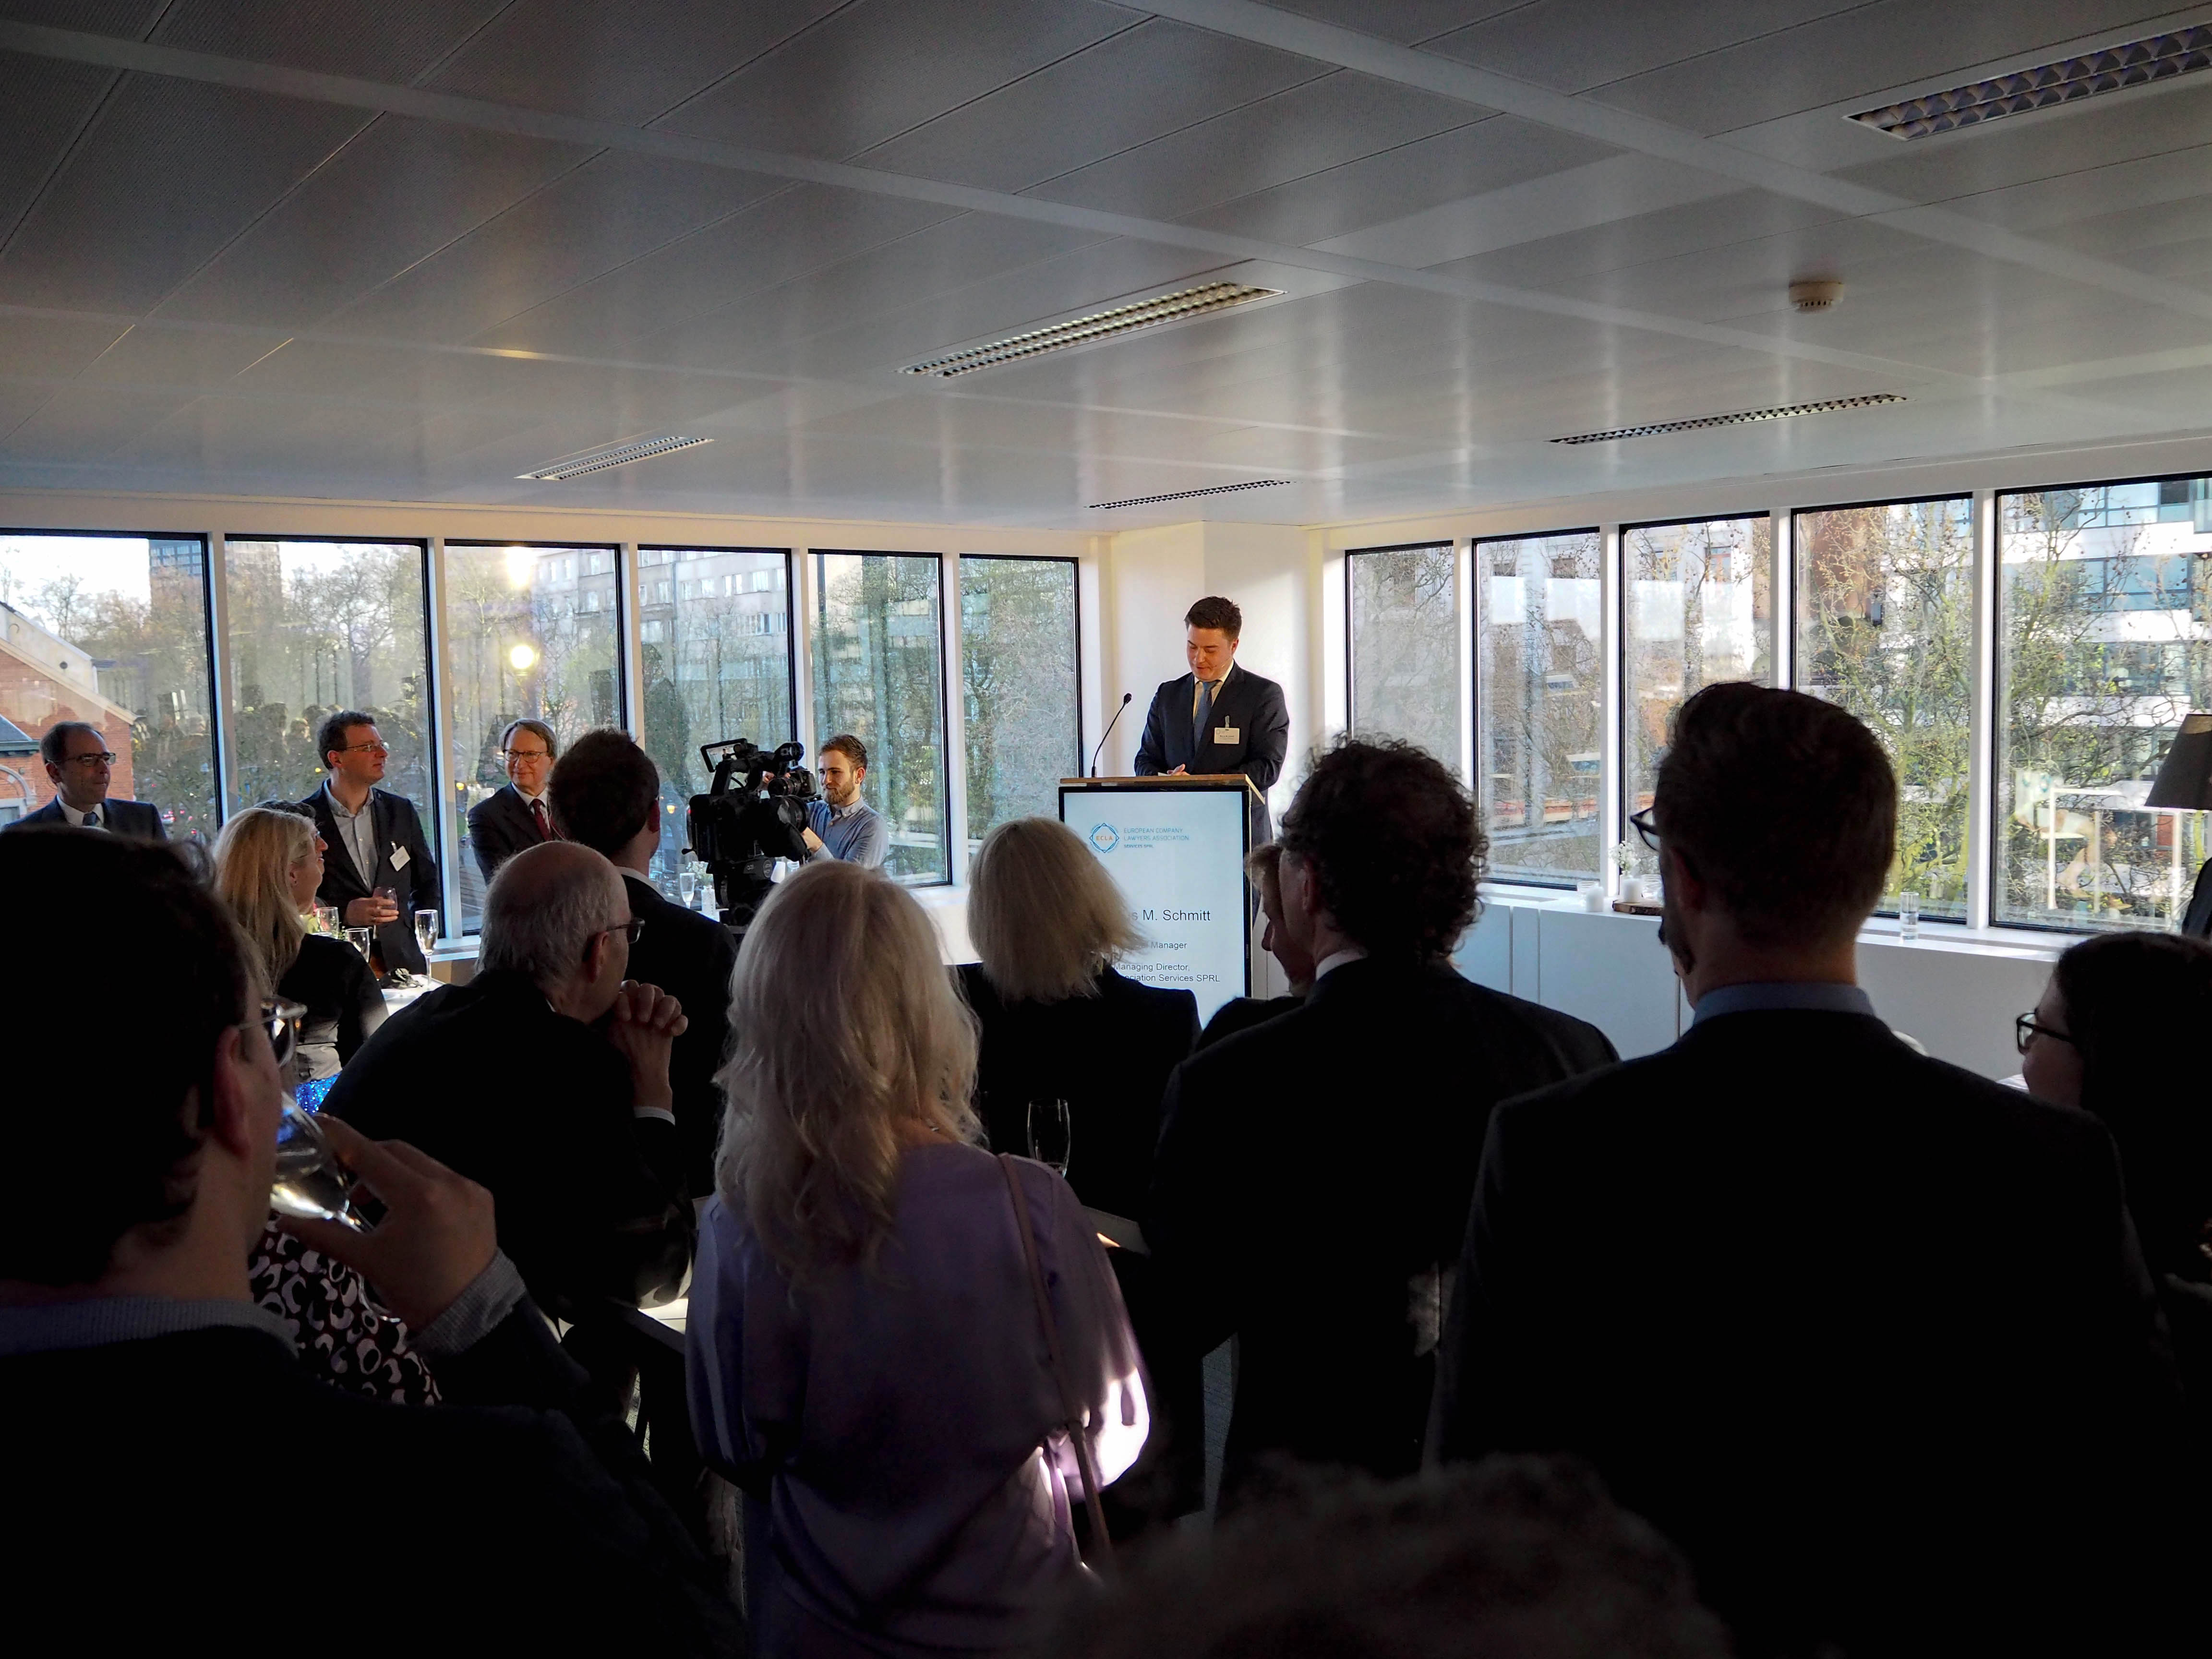 RECEPTION 2018 - KICK-OFF AT ECLA'S NEW OFFICE IN BRUSSELS